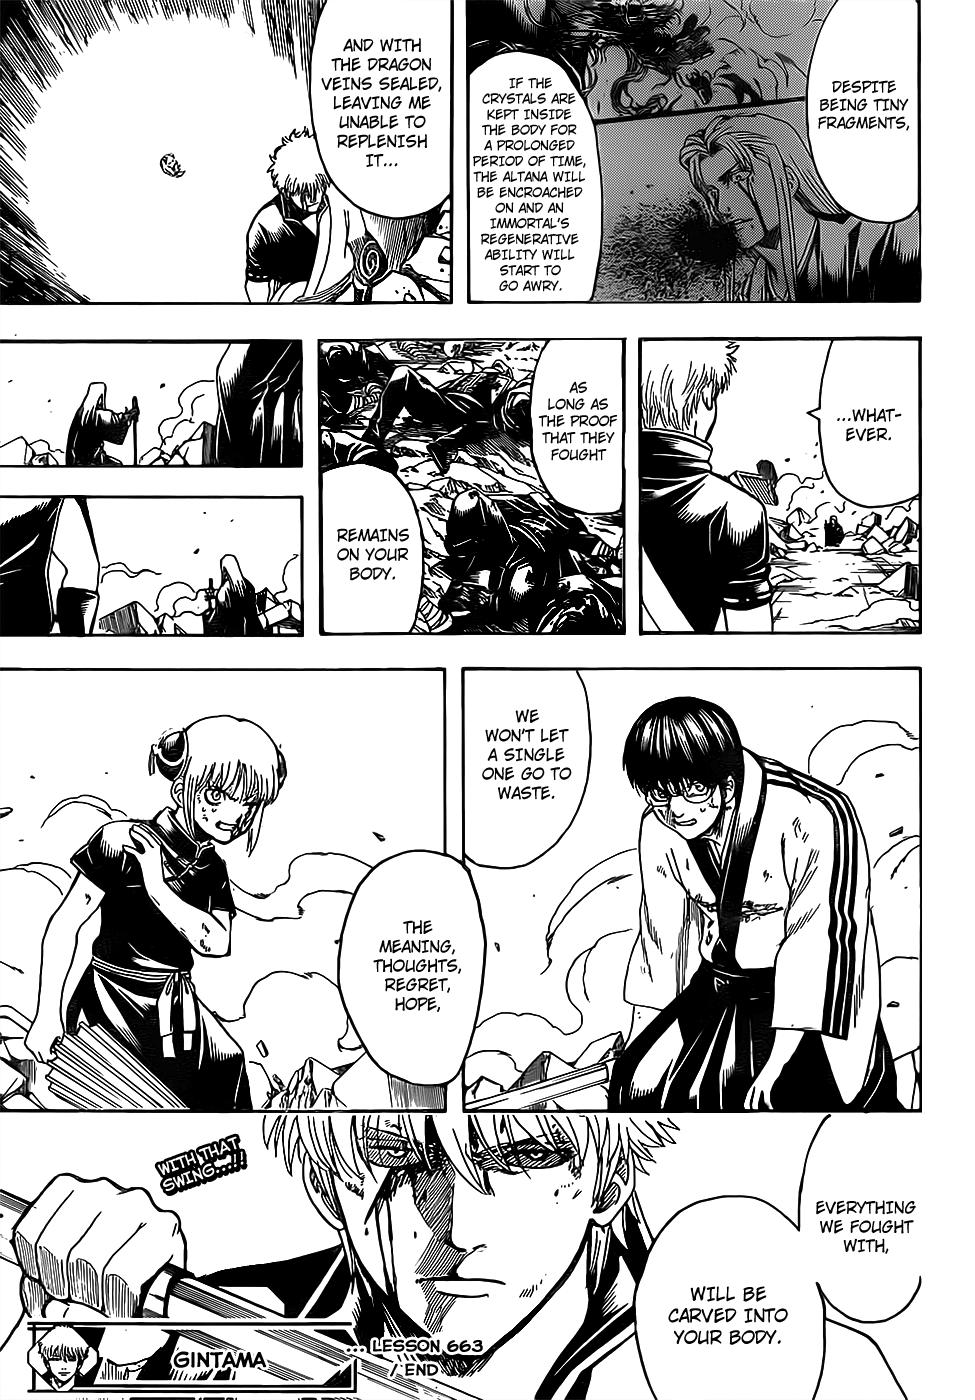 Gintama Chapter 663  Online Free Manga Read Image 19